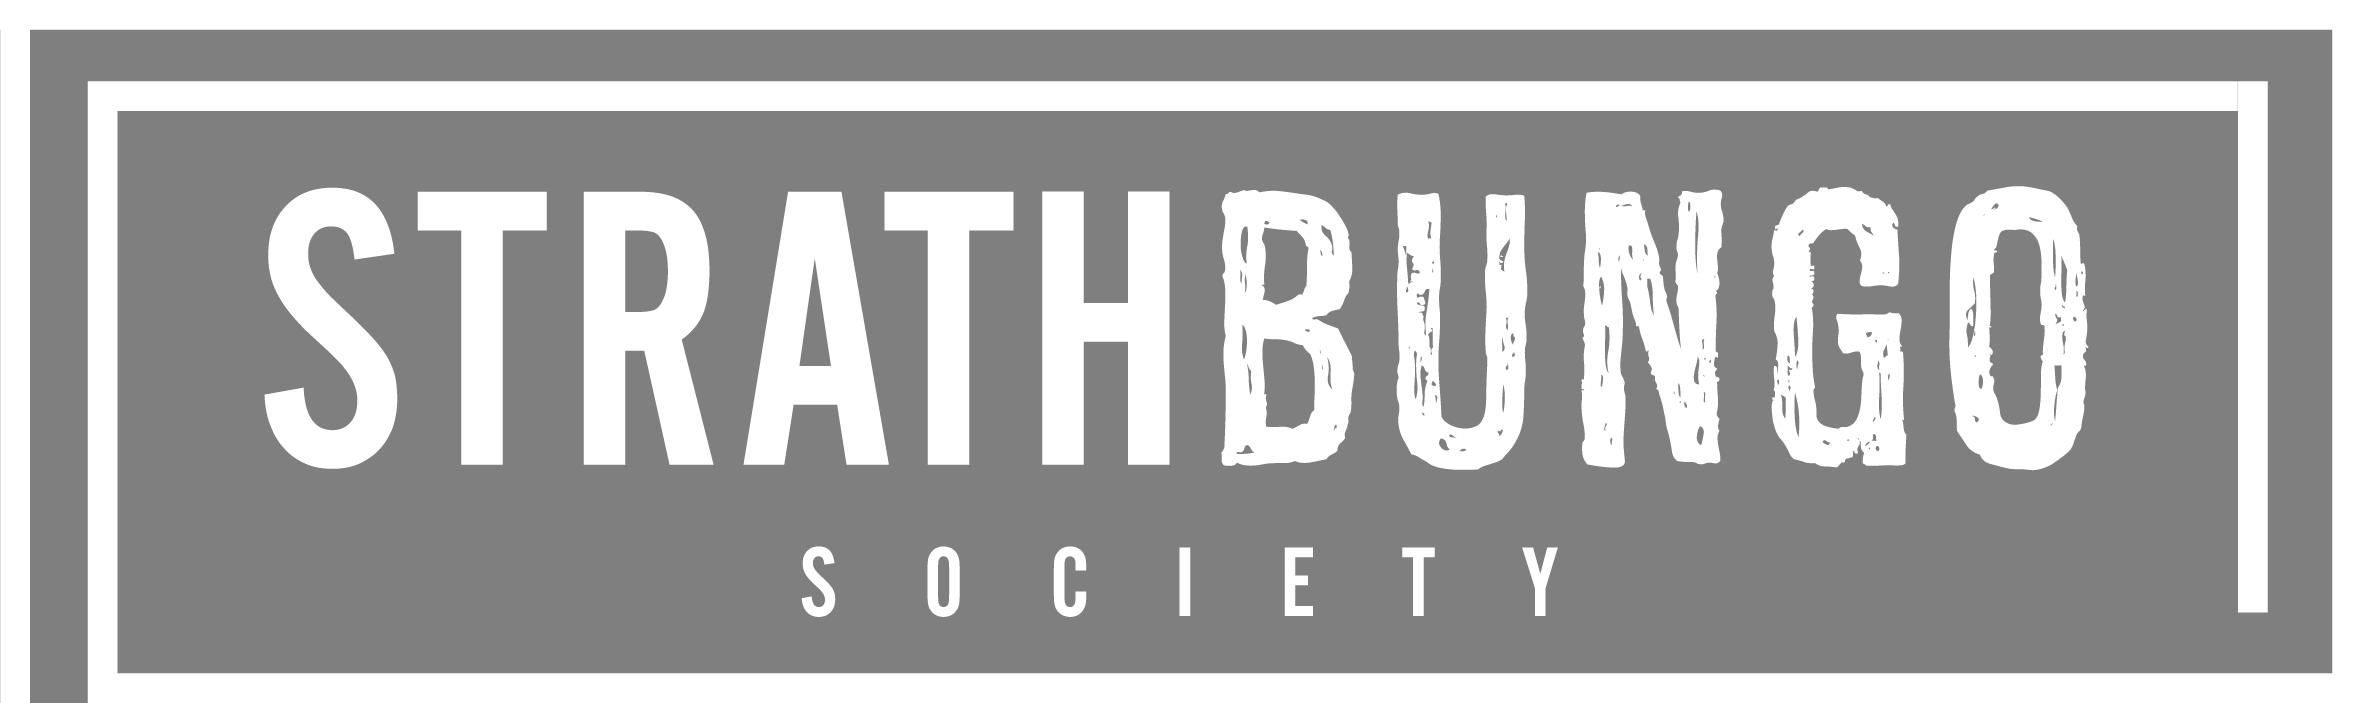 The Strathbungo Society